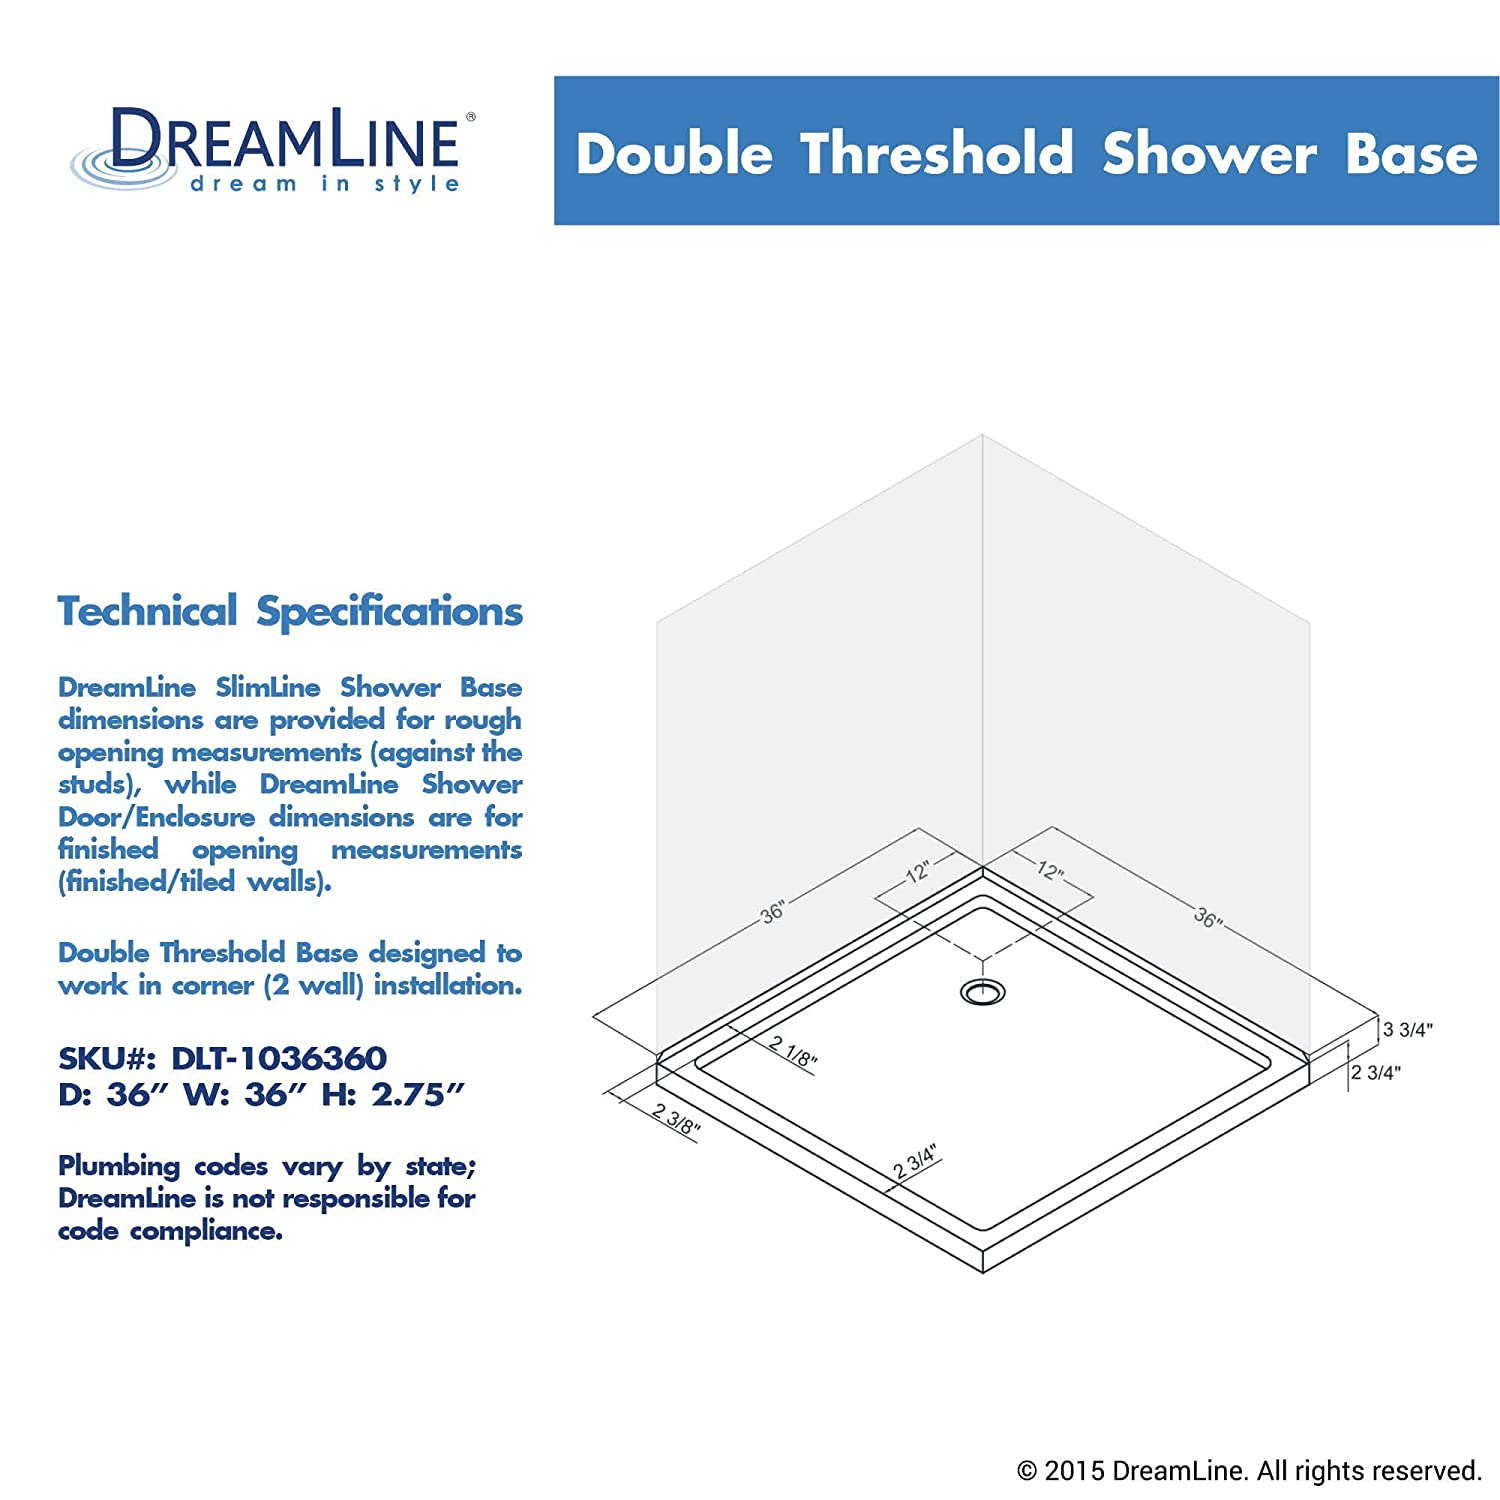 dreamline slimline 36 in x 36 in double threshold shower base dlt1036360 shower systems amazoncom - Dreamline Shower